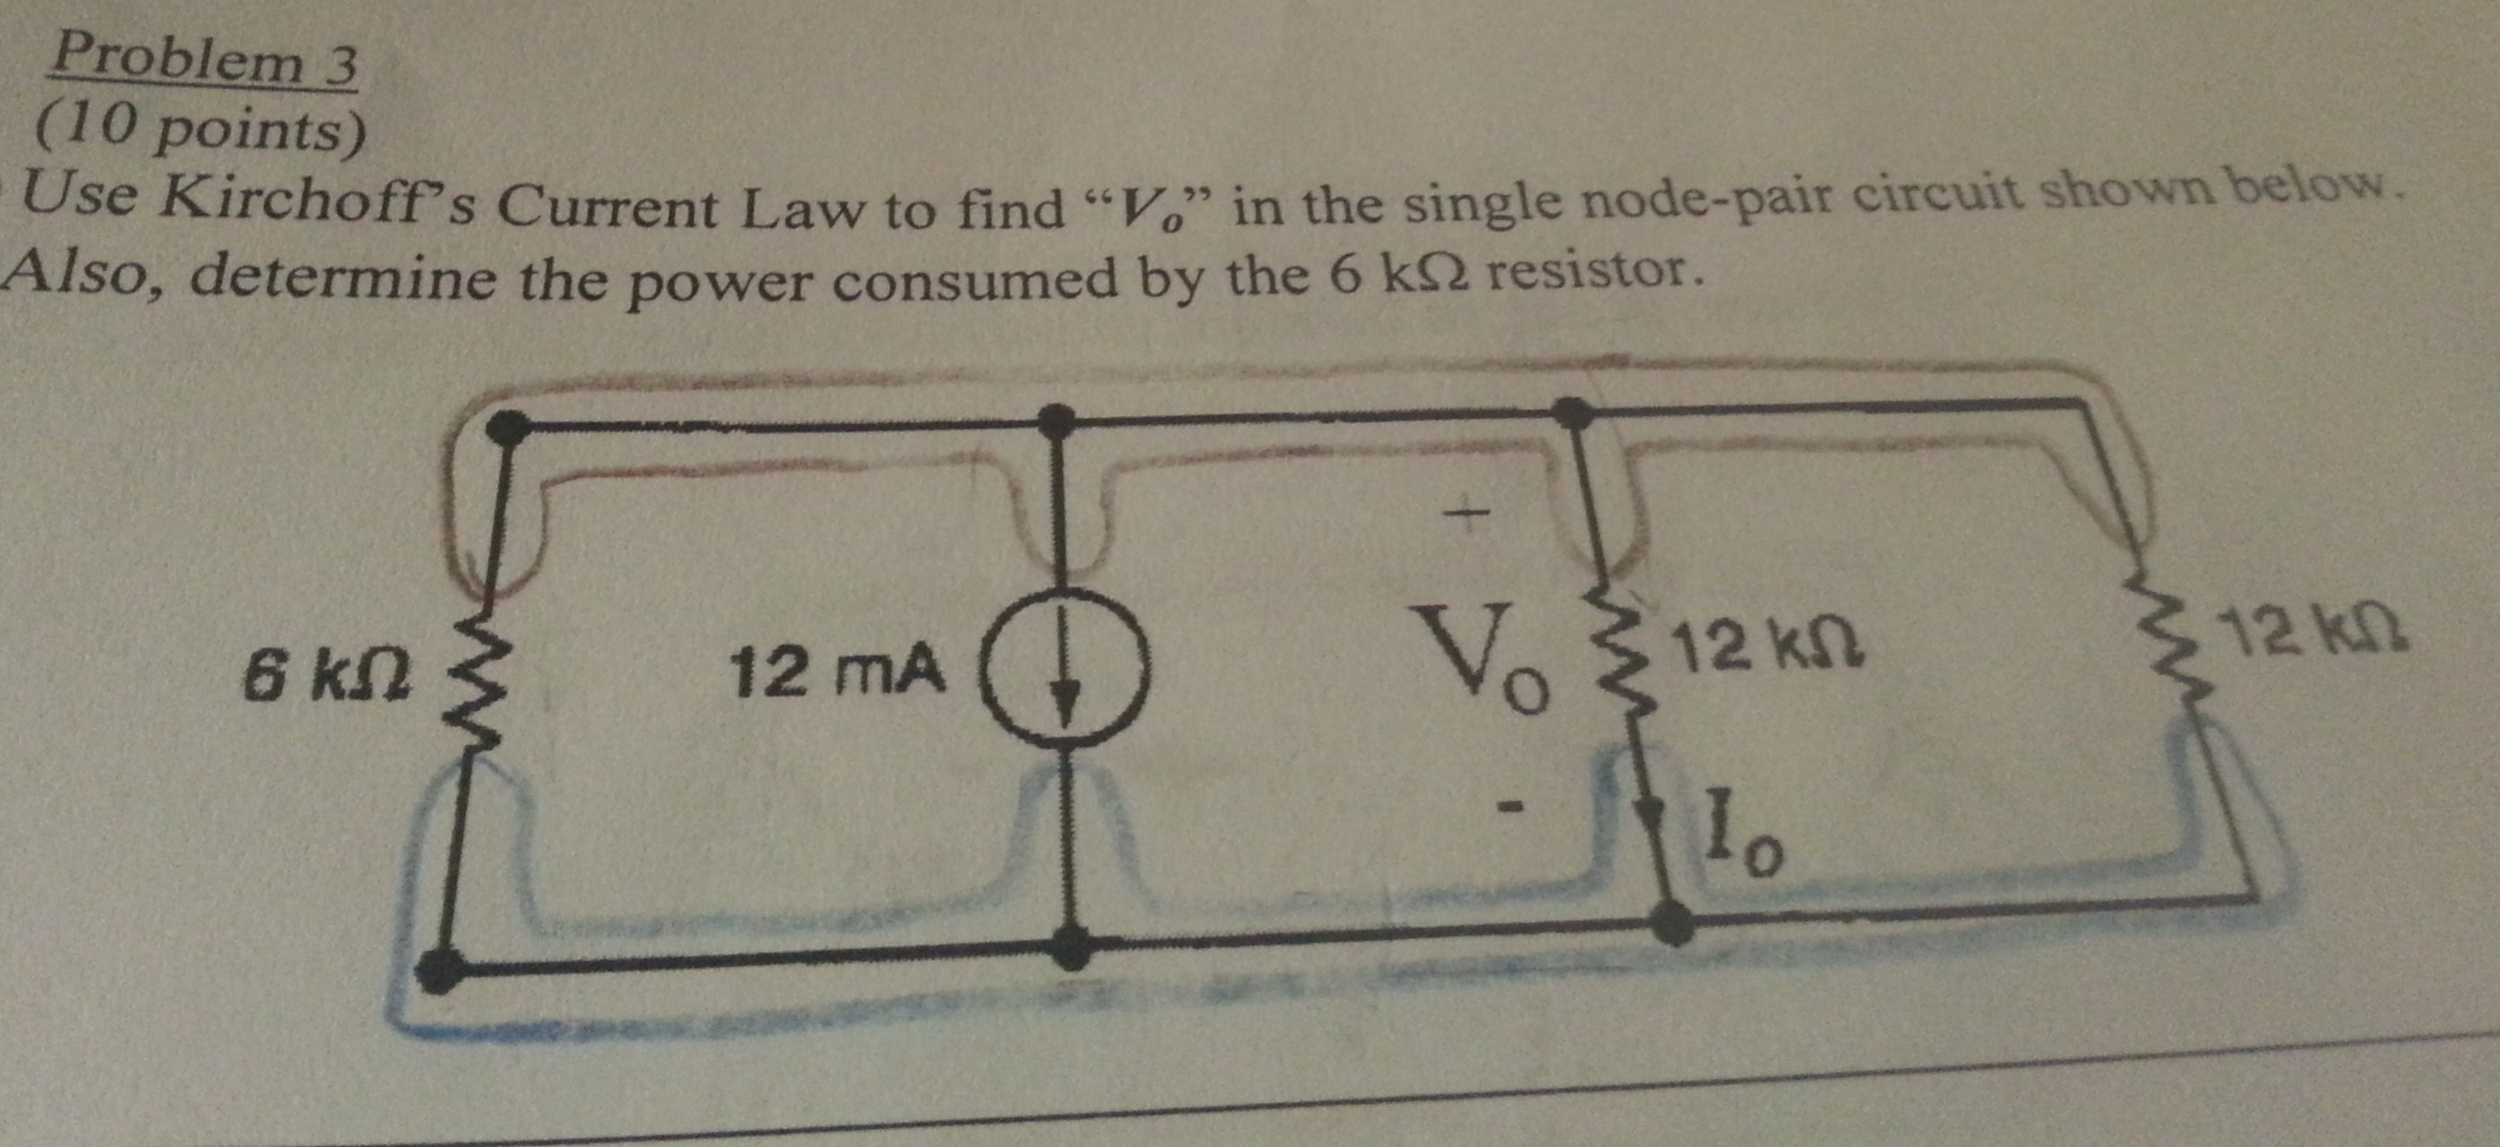 I'm really confused on how to use KCL on this circ